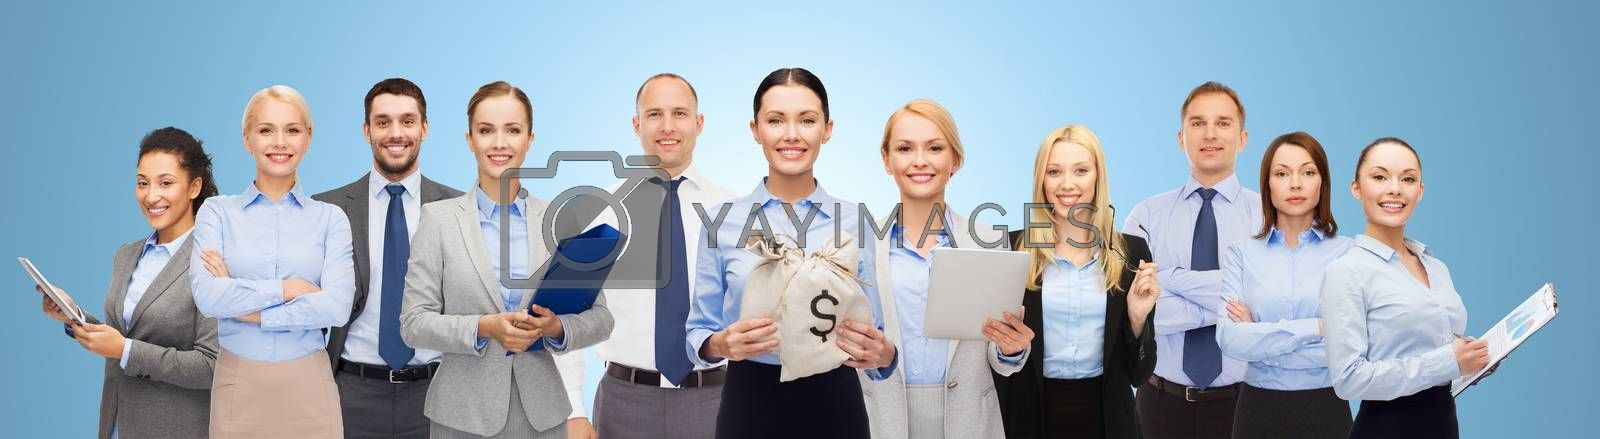 business, people, finances and banking concept - group of happy businesspeople with money bags over blue background